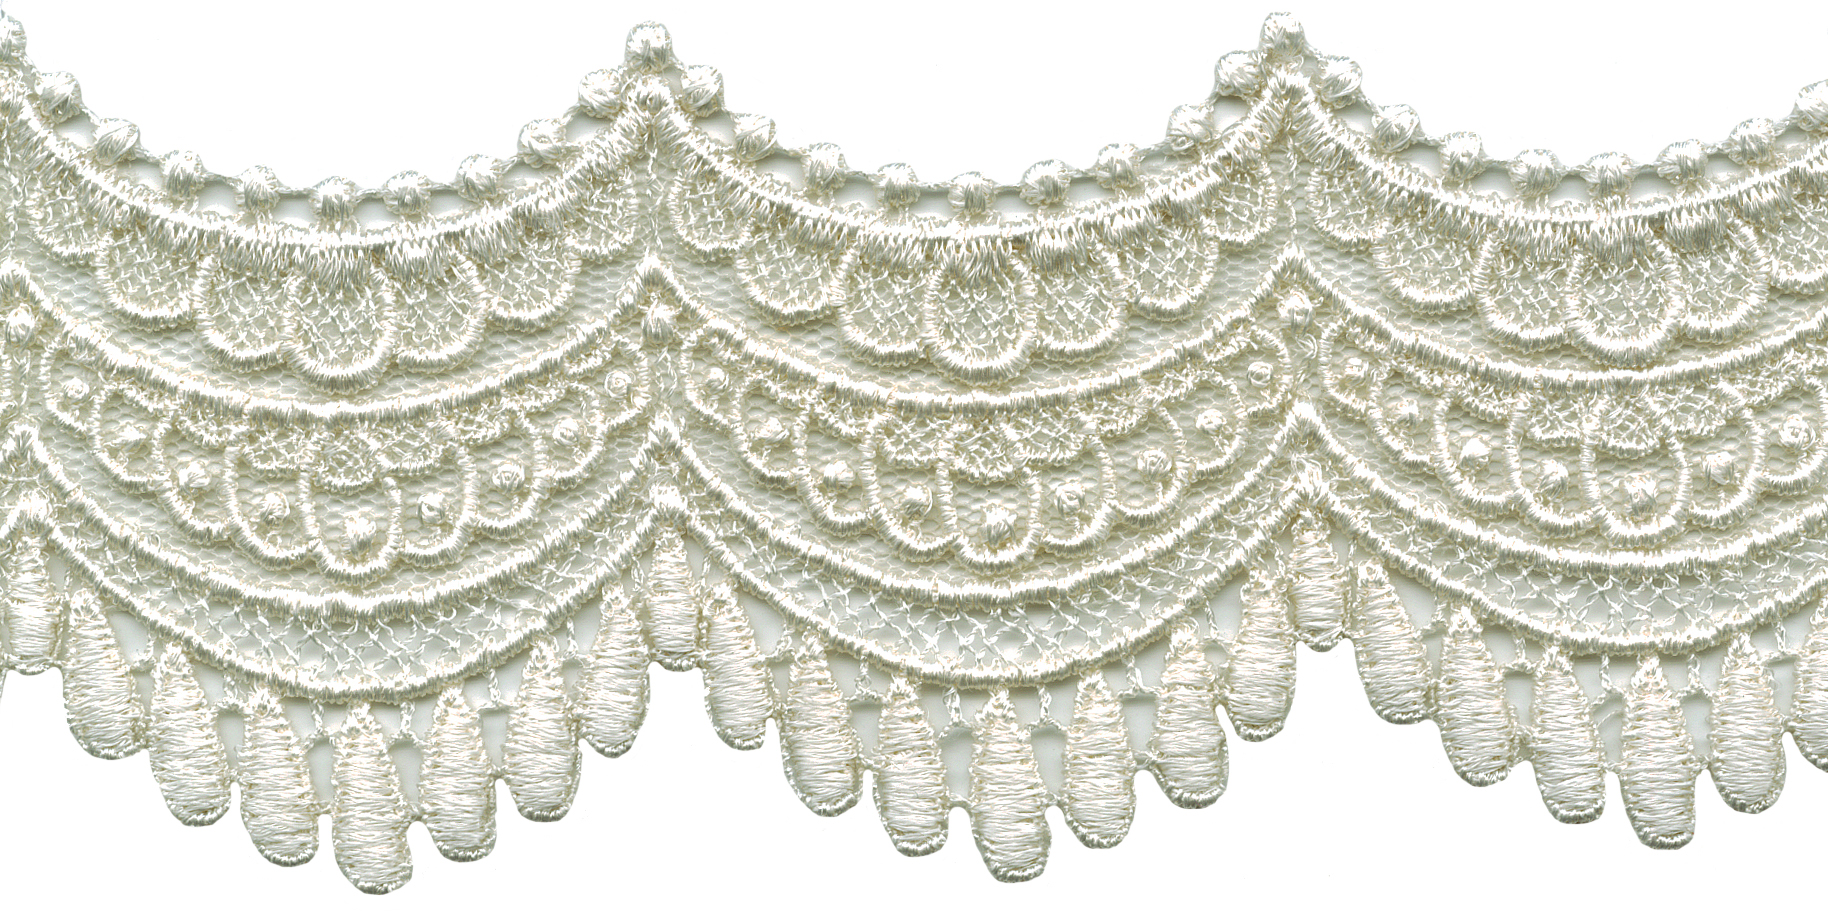 selling by the yard trim ivory 7//8 inch  wide Venise Lace